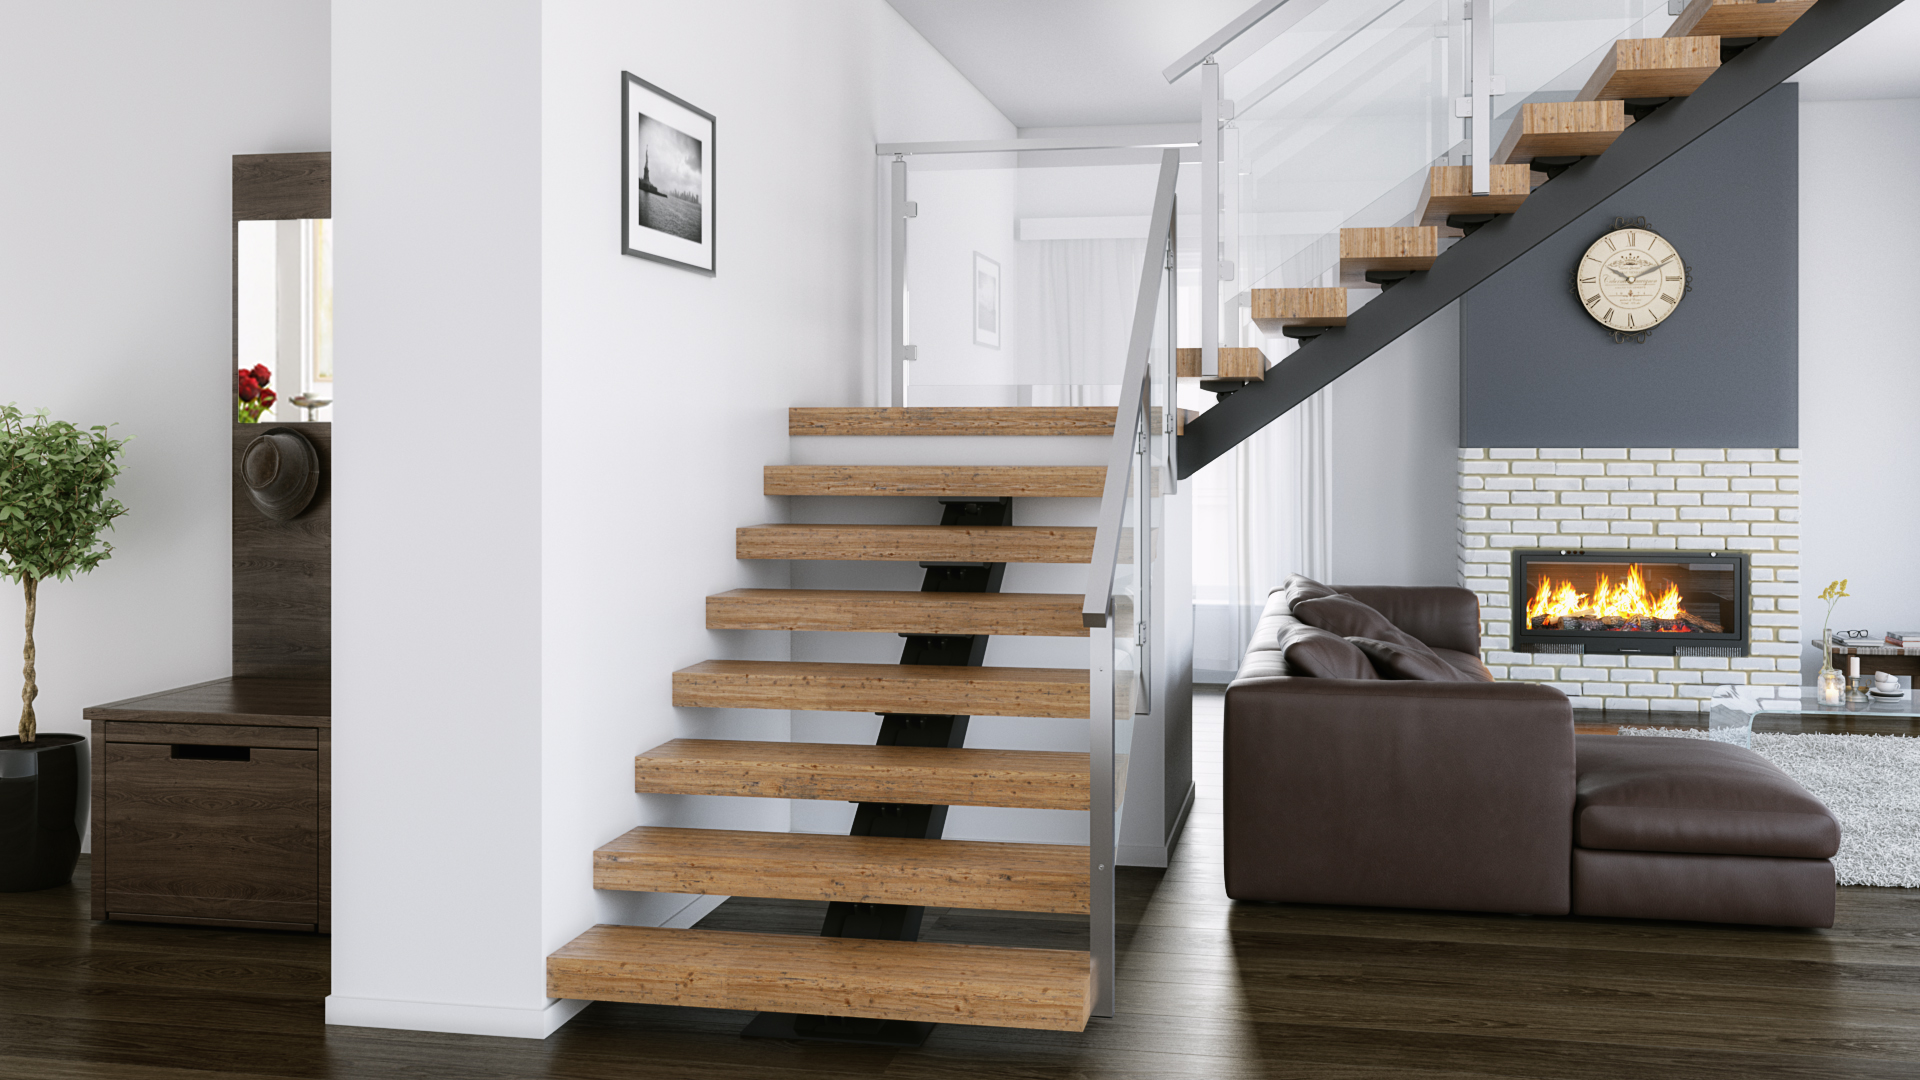 Best Images Modern Staircase Ideas On Staircase Ideas: Floating Stairs Design: Straight, 90° Turn, Switchback